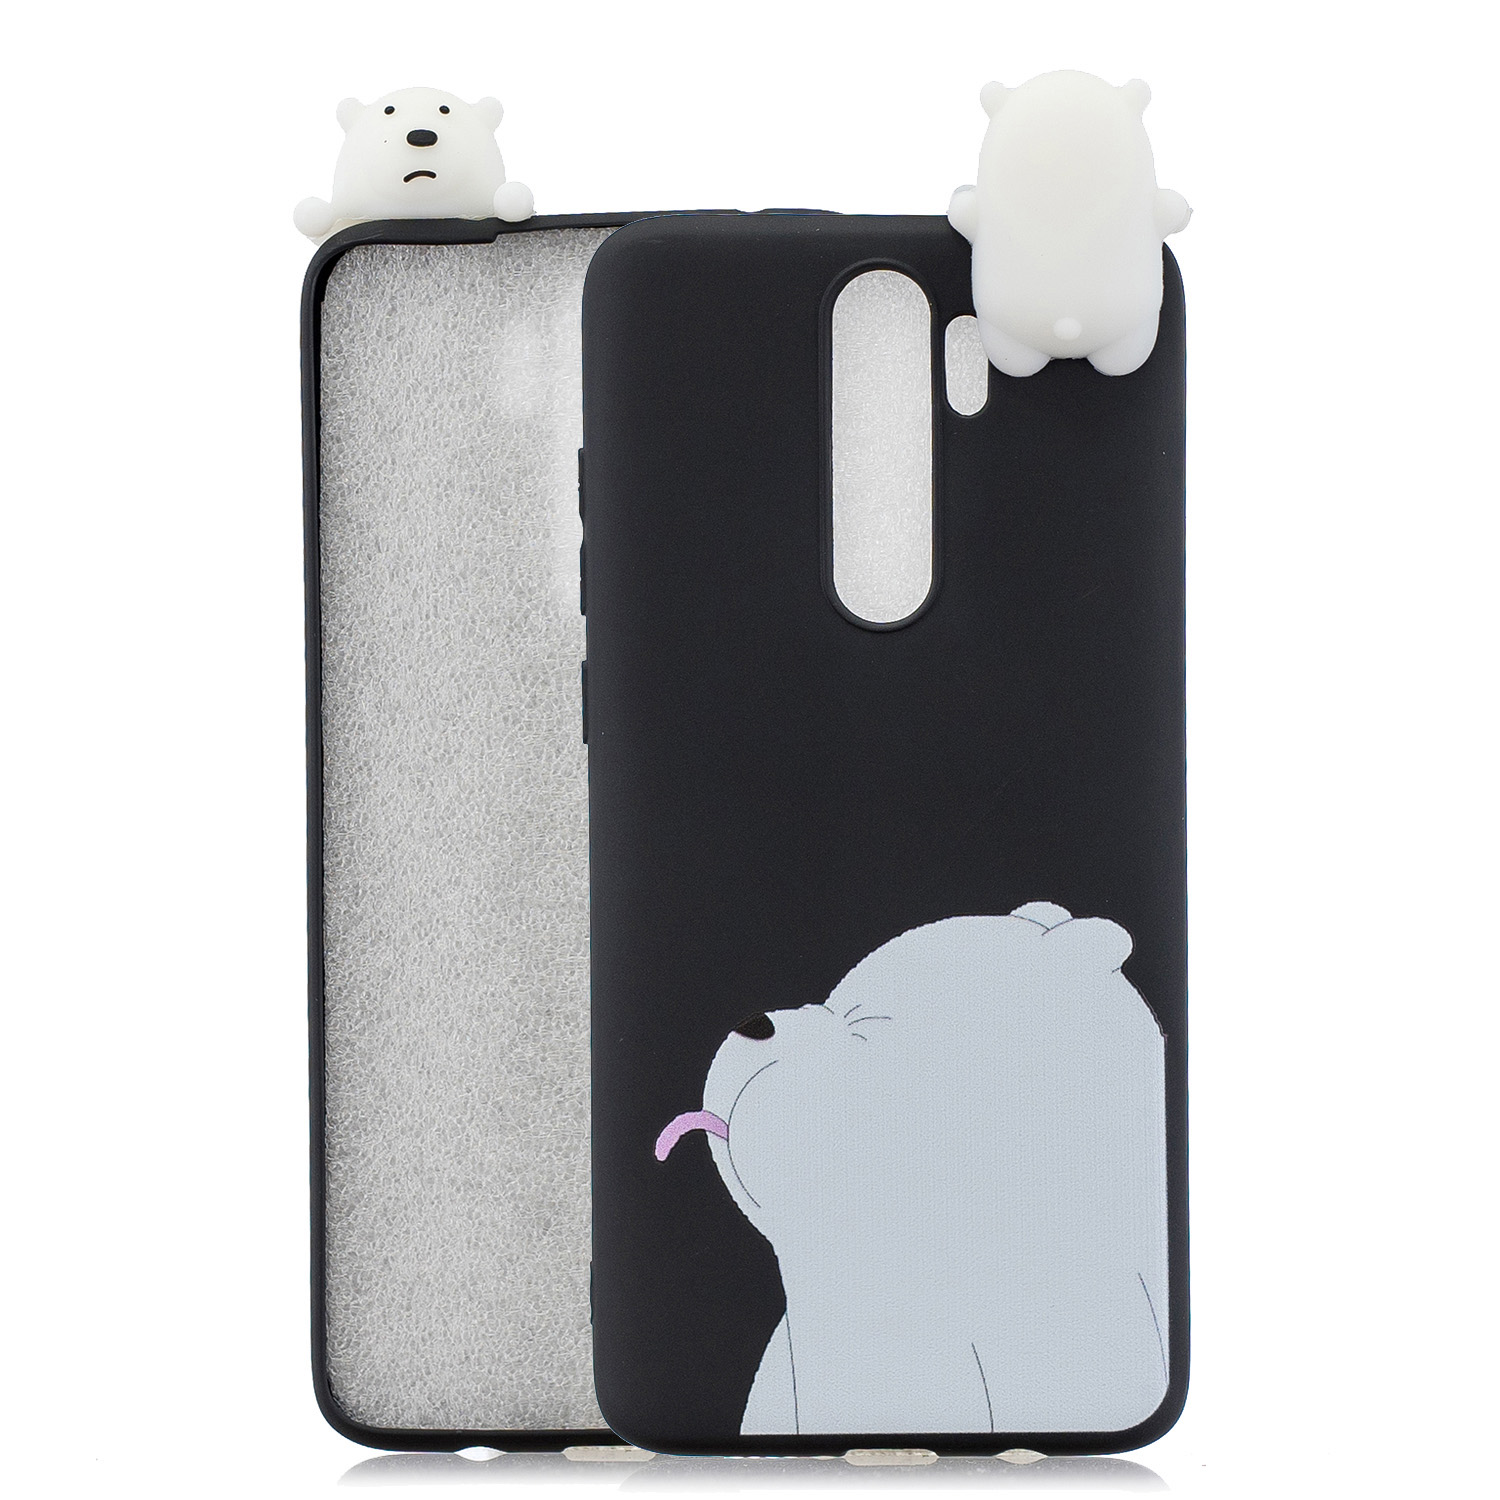 For Redmi NOTE 8 NOTE 8 pro 3D Color Painting Pattern Drop Protection Soft TPU Back Cover Mobile Phone Case black